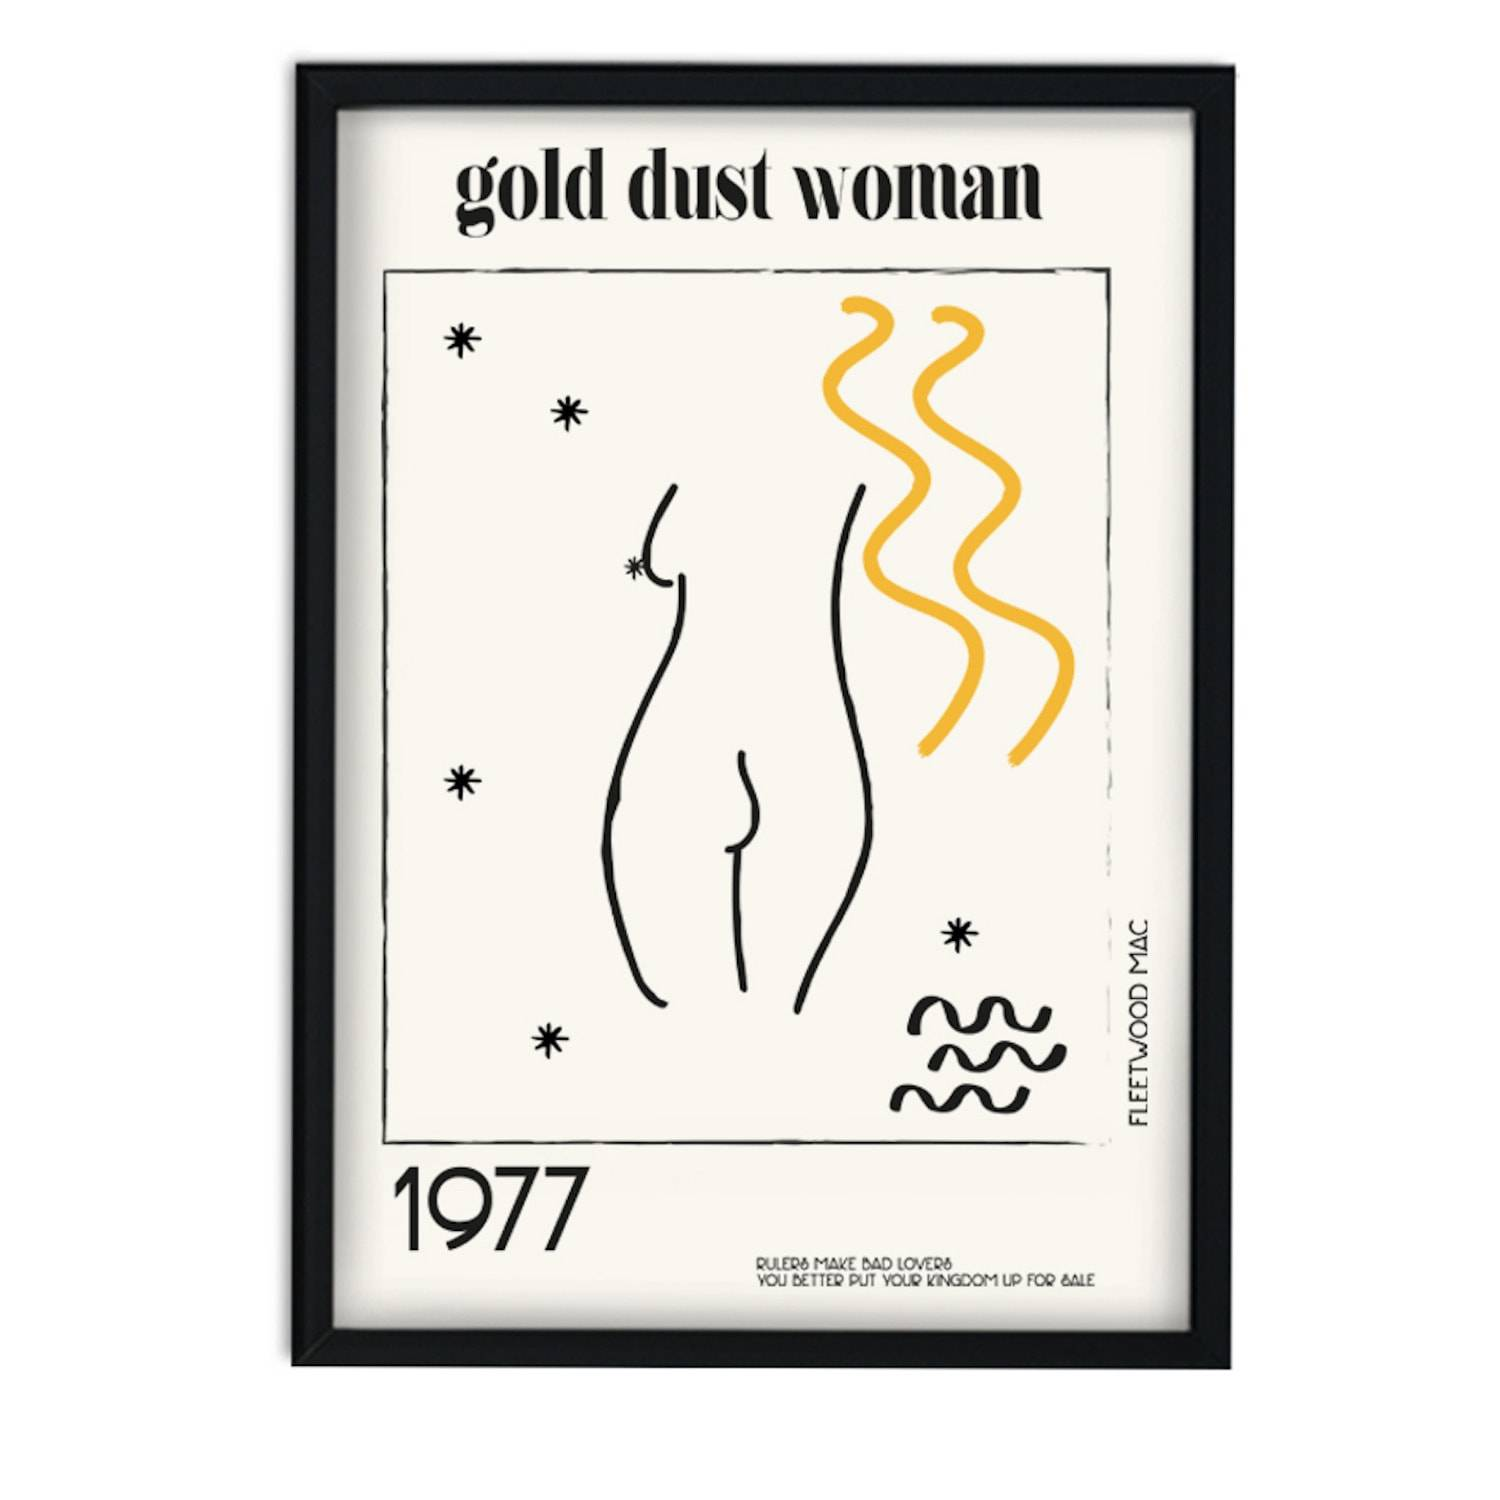 Fanclub - Gold Dust Woman Fleetwood Mac Music Inspired Abstract Retro A3 Art Print